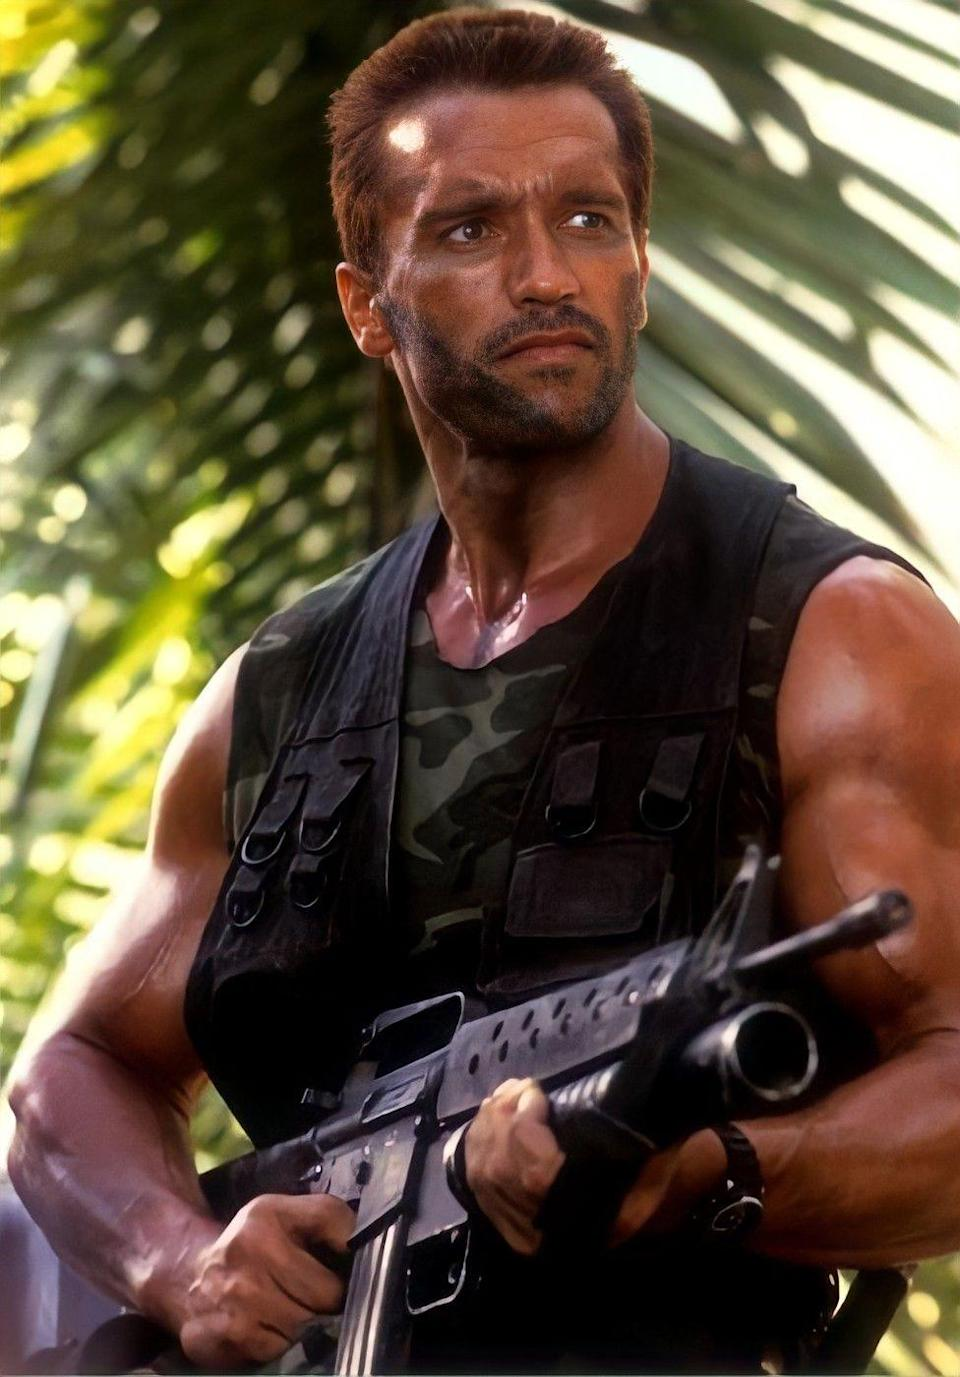 """<p>The 1987 sci-fi horror thriller gave us Arnold Schwarzenegger as Major Alan """"Dutch"""" Schafer in a wild and terrifying face off against Predator, an alien being who hunts Dutch and his team for nothing more than sport. <em>Predator</em> was the first installment of four existing movies (a fifth flick was announced in November 2020) and showed us how a beefed up human measured up against an equally beefed up monster. Physical power aside, Dutch's fearlessness and quick smarts—<em>figuring out mud could camouflage his heat signature? Genius!</em>—help him ultimately defeat Predator and make it out alive.</p>"""